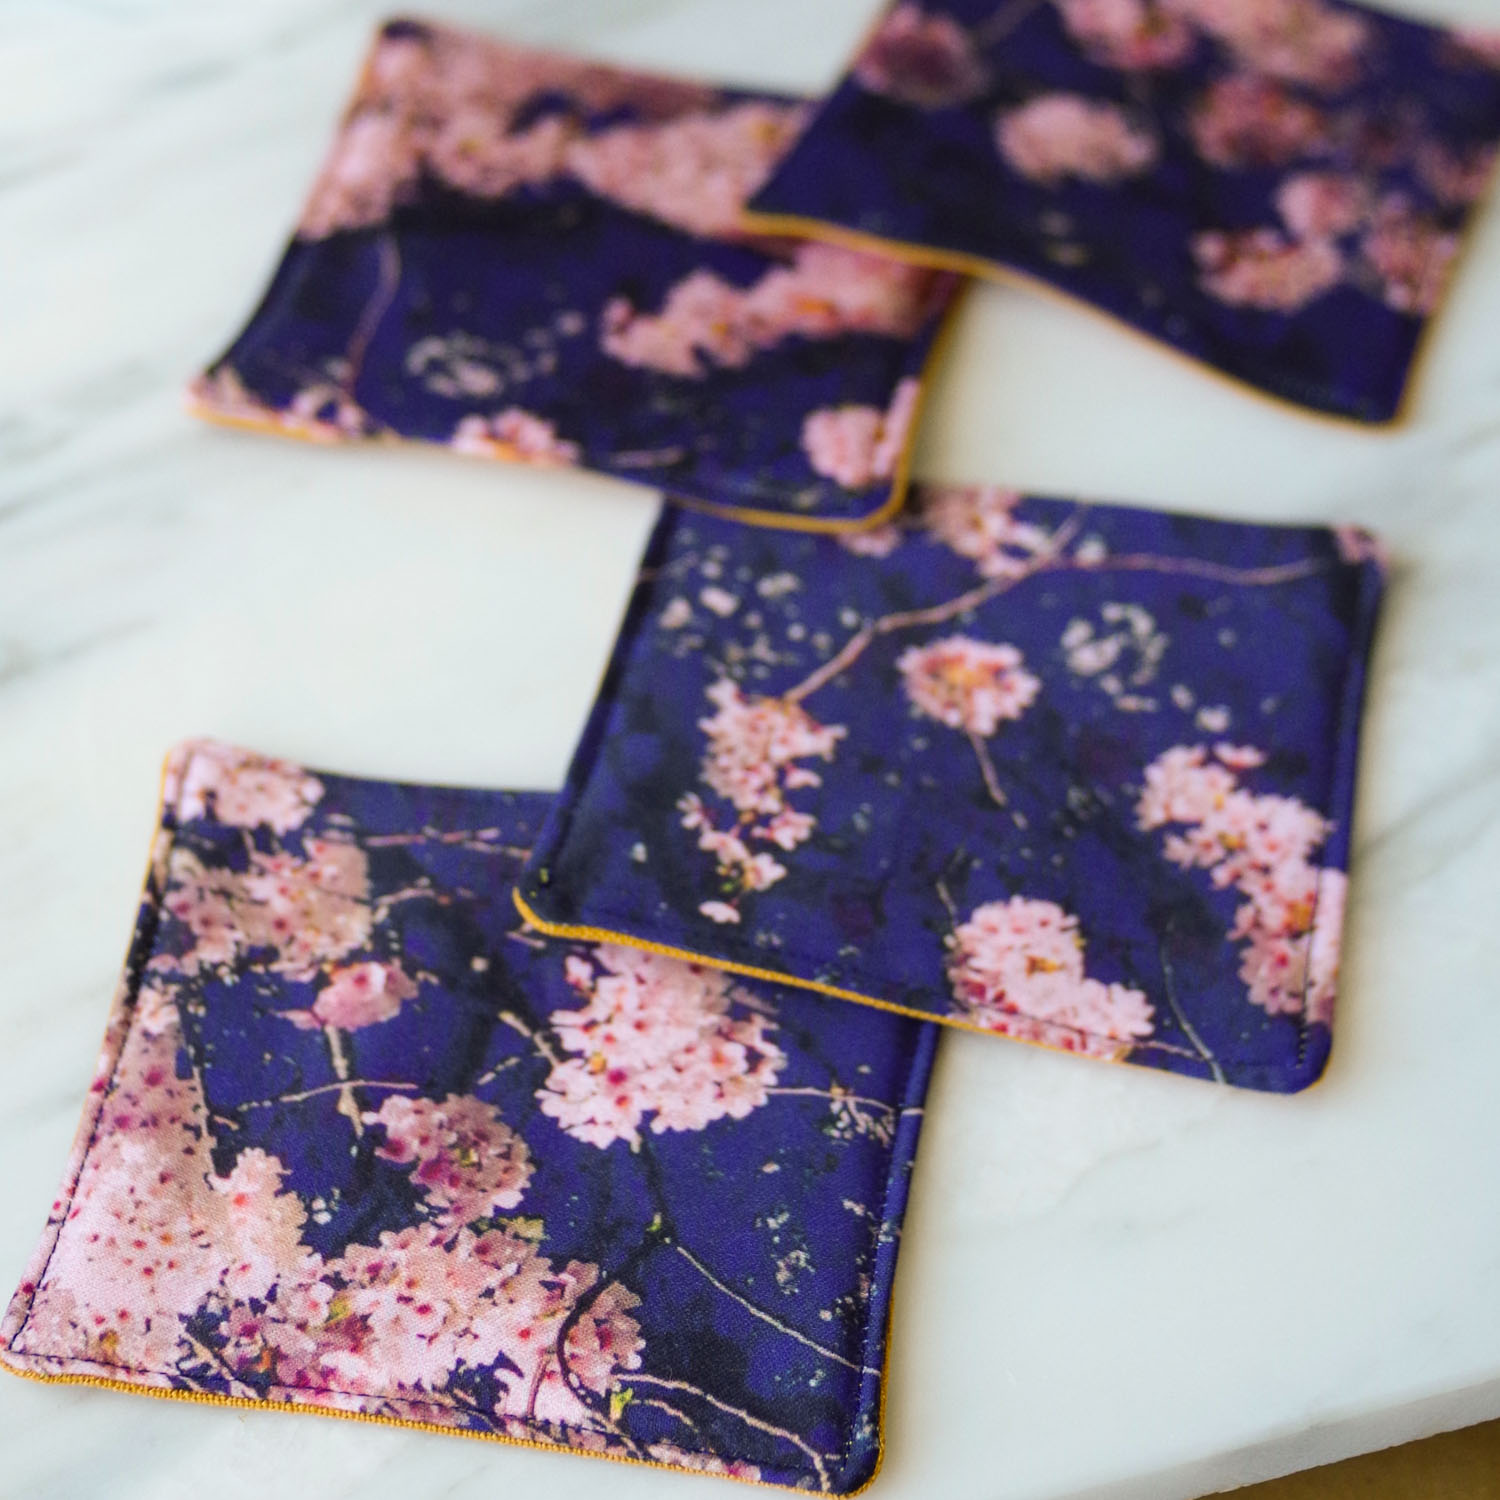 Cherry Blossom Coasters in organic cotton. By Beautiful Ingredient.